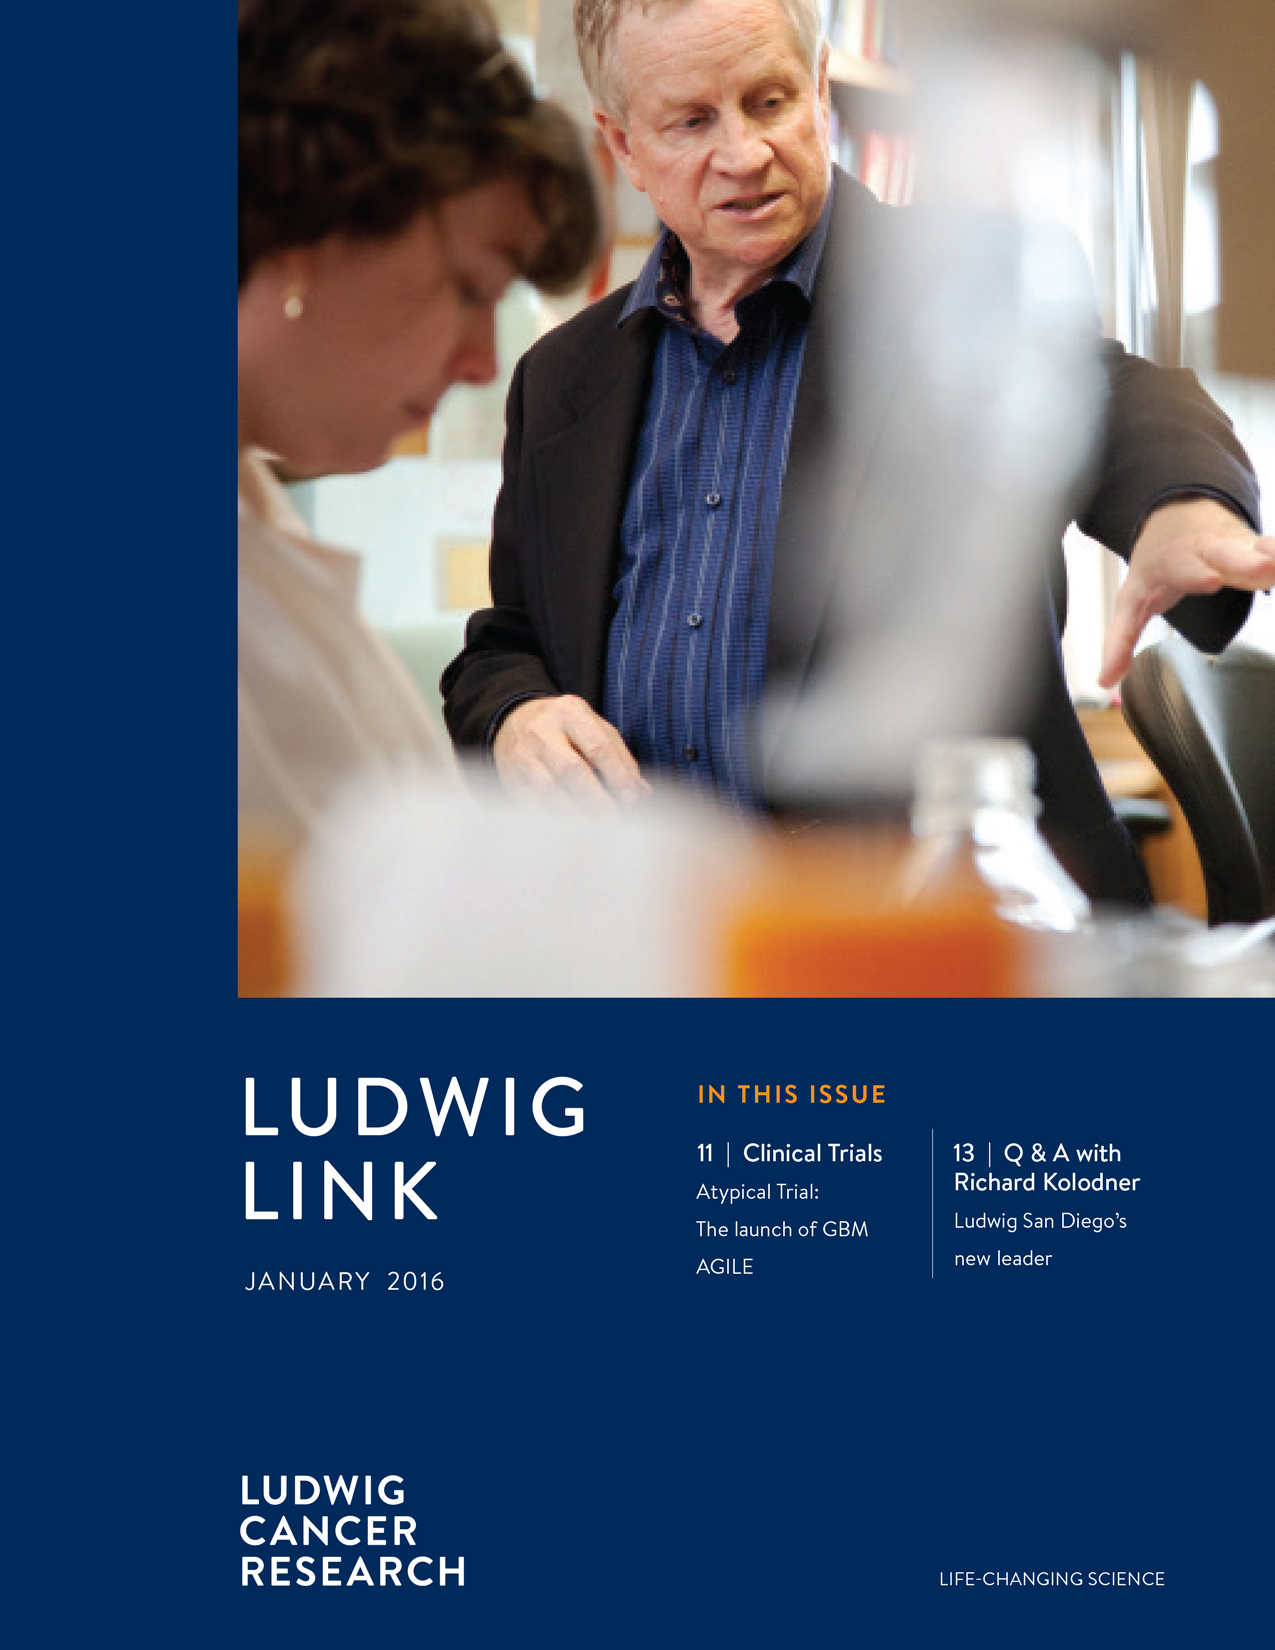 Ludwig Link January 2016 cover